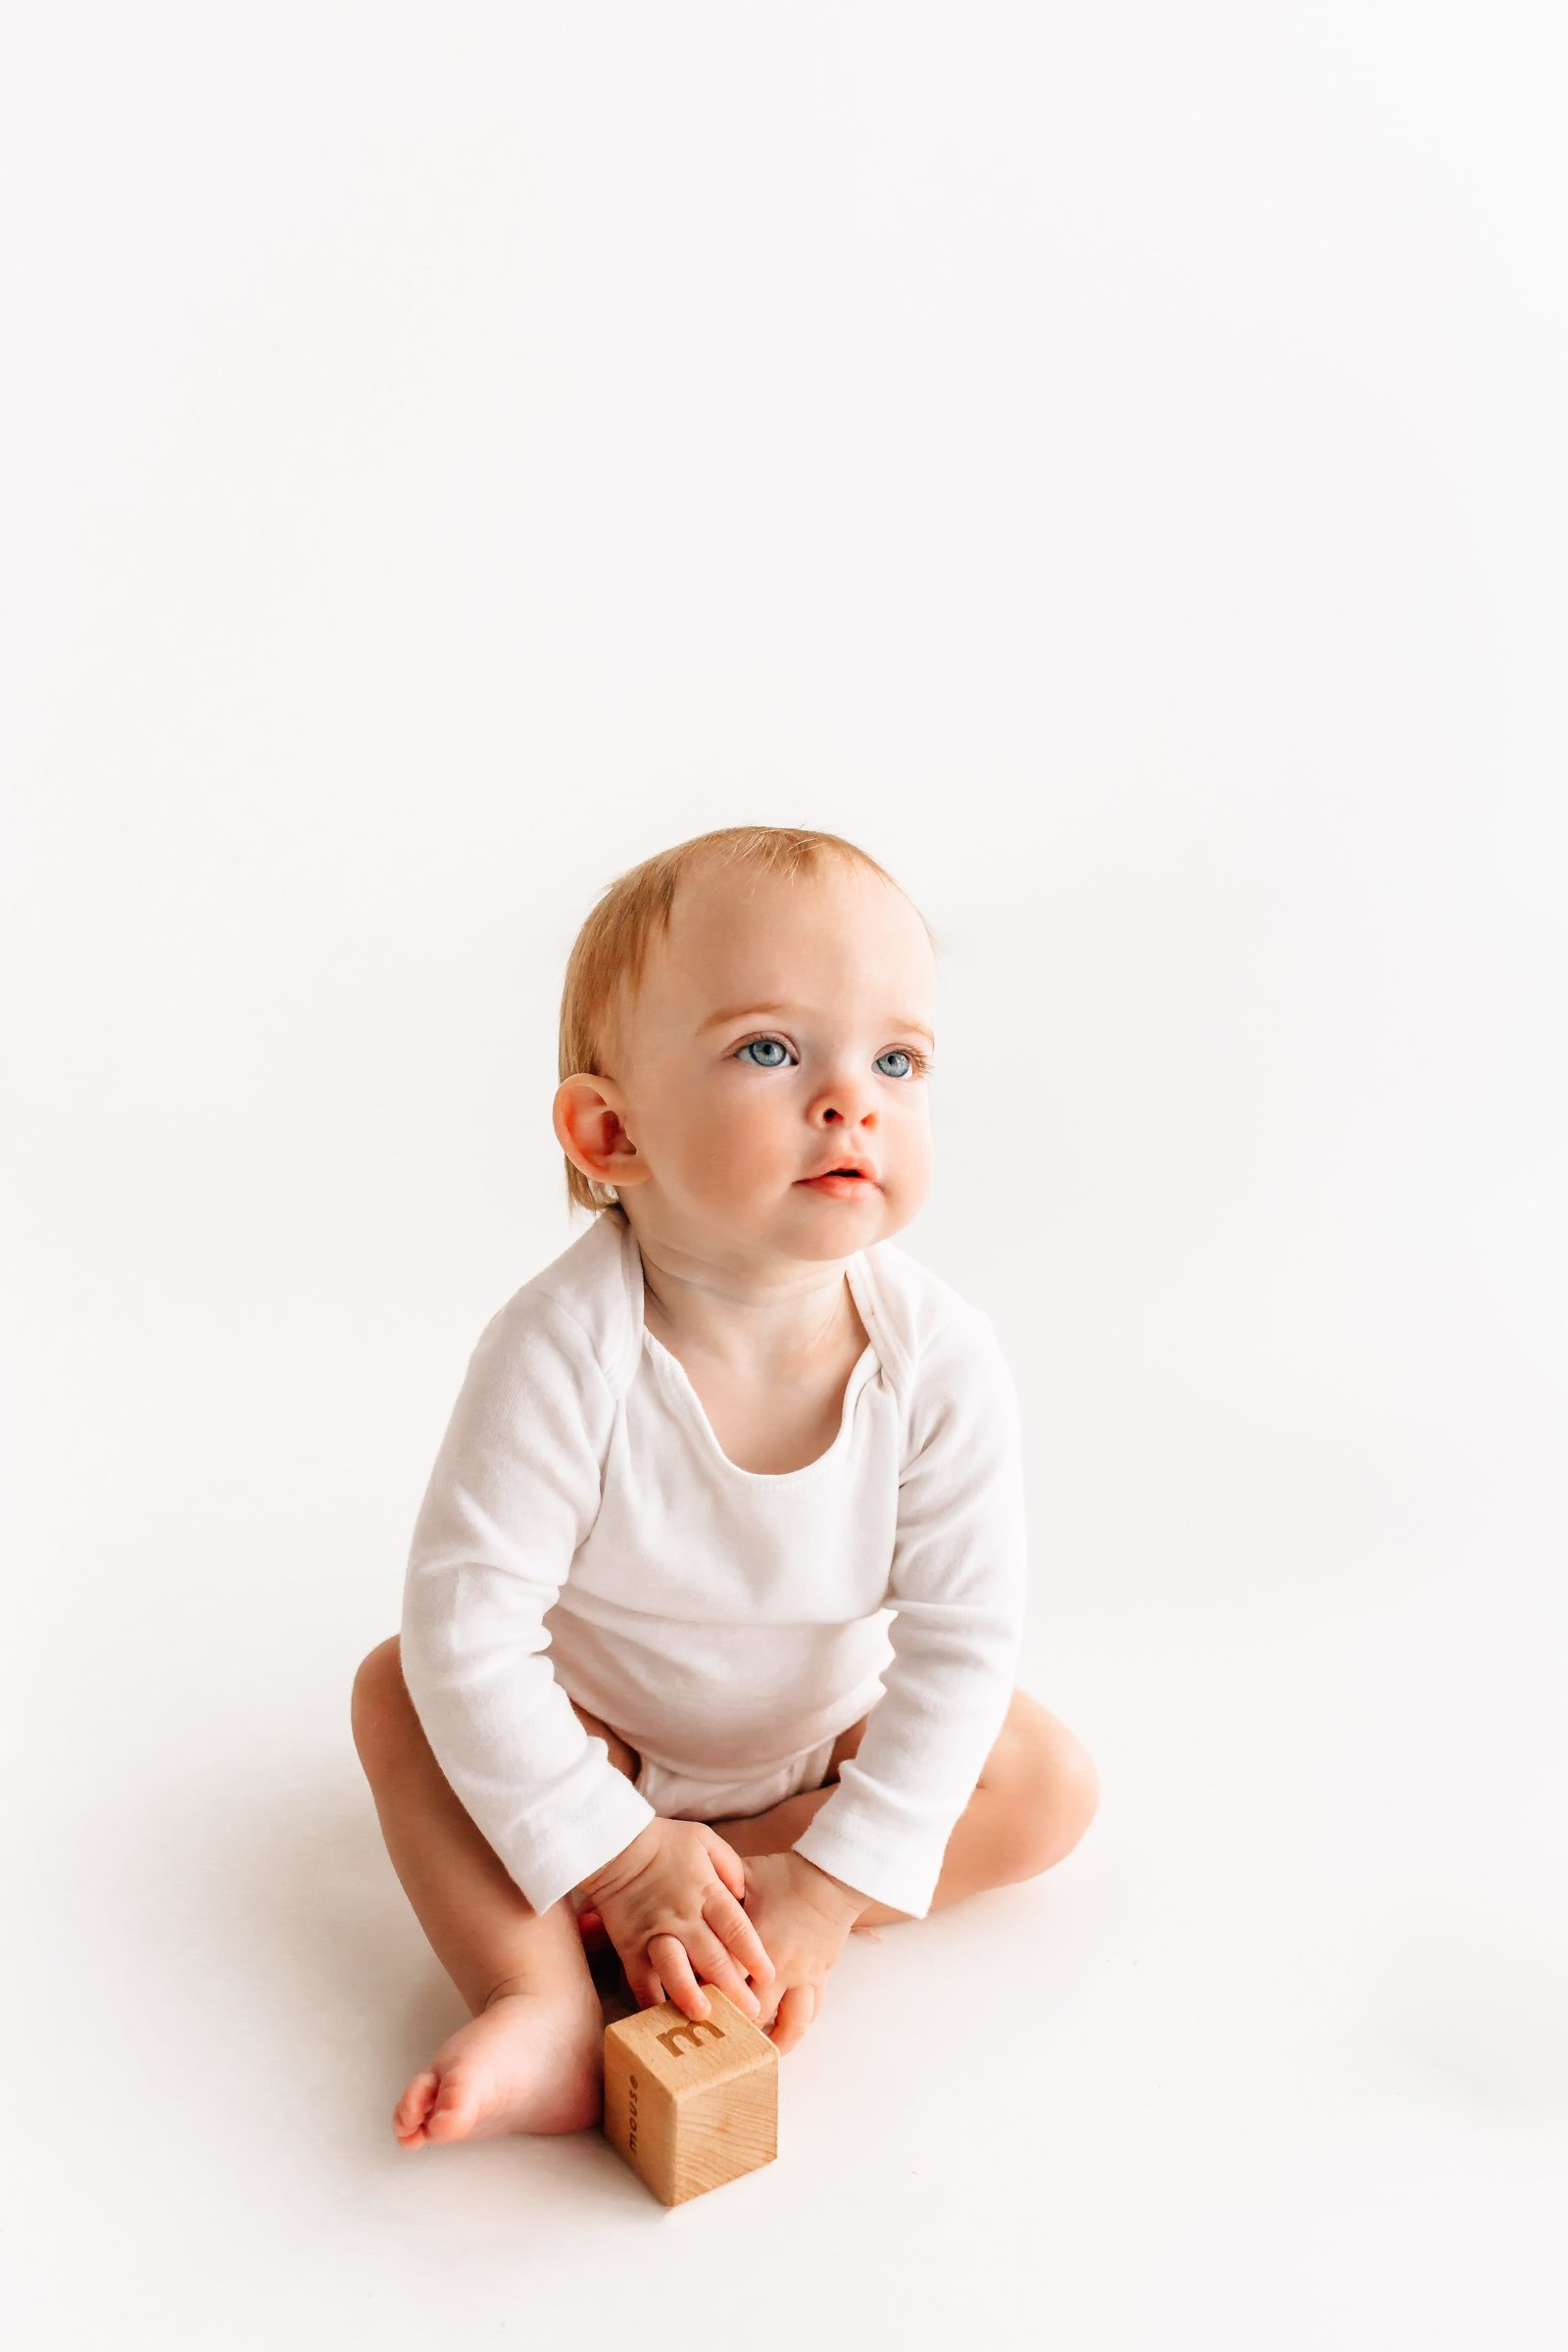 St_Louis_Baby_Photographer_Kelly_Laramore_Photography_64